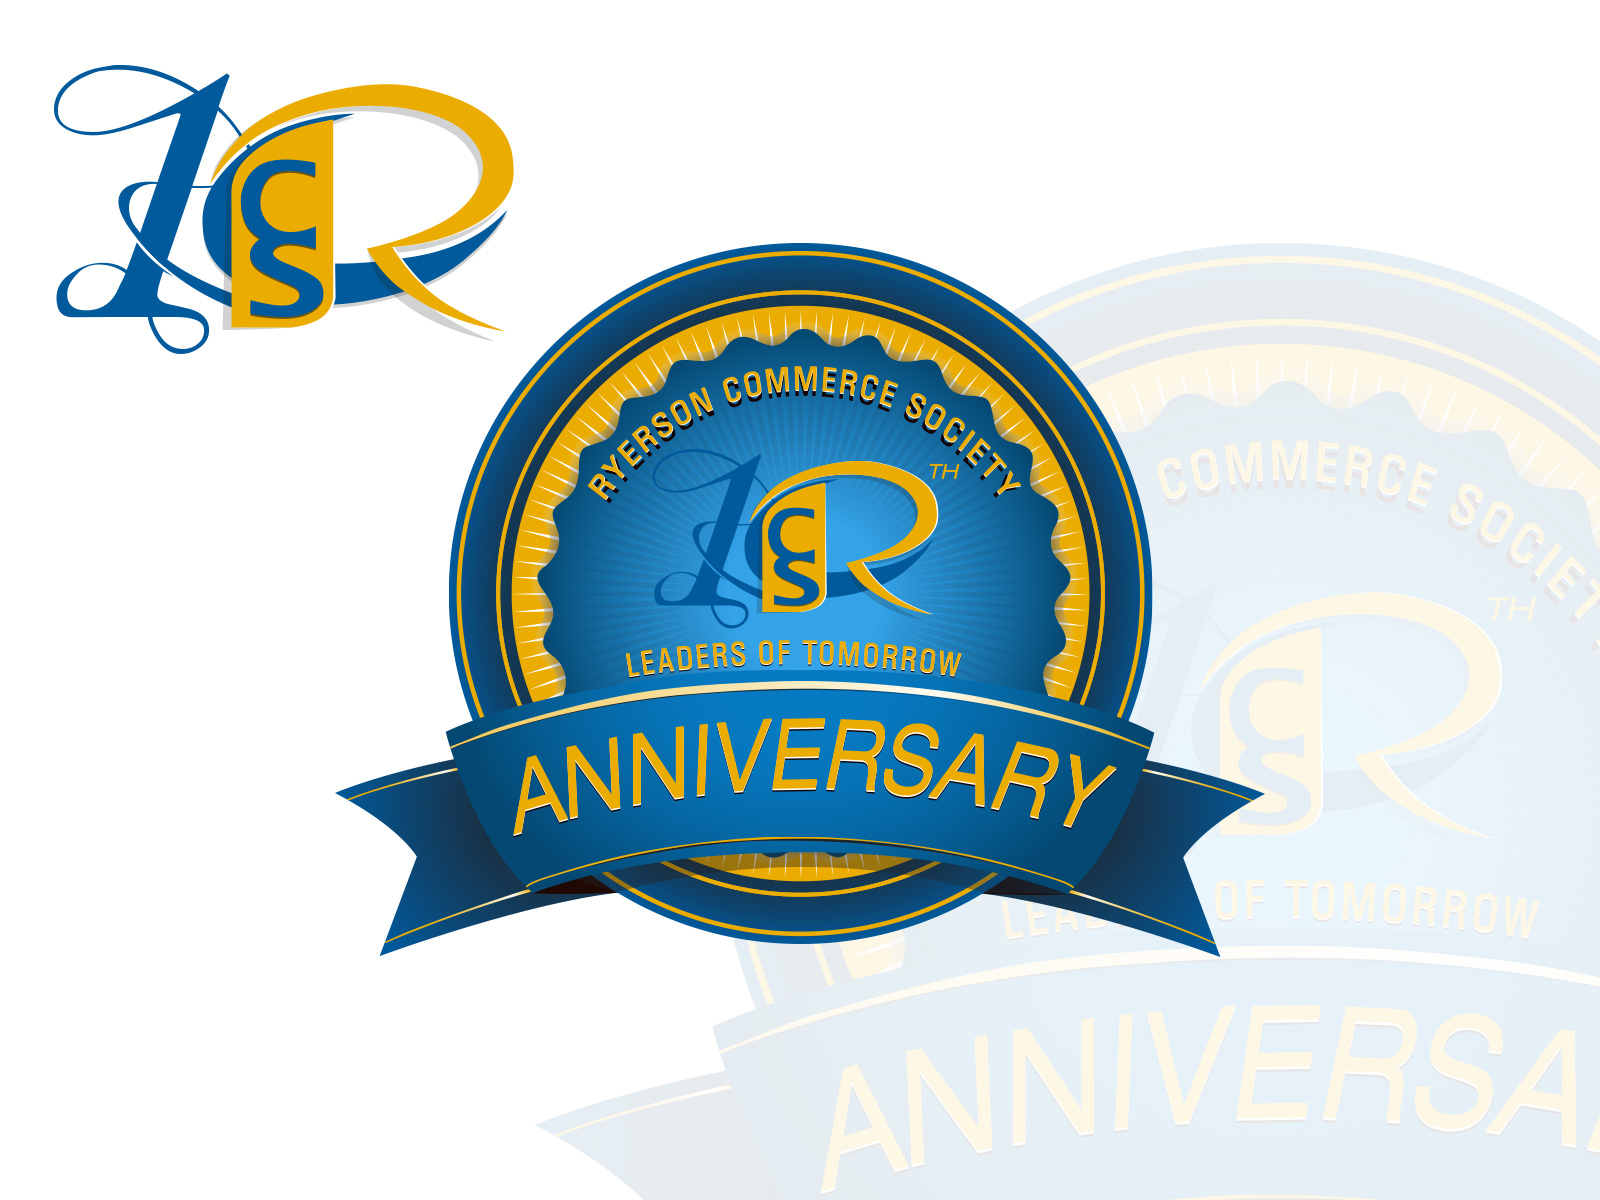 Logo Design by olii - Entry No. 82 in the Logo Design Contest 10 Year Anniversary Logo Design for the Ryerson Commerce Society.